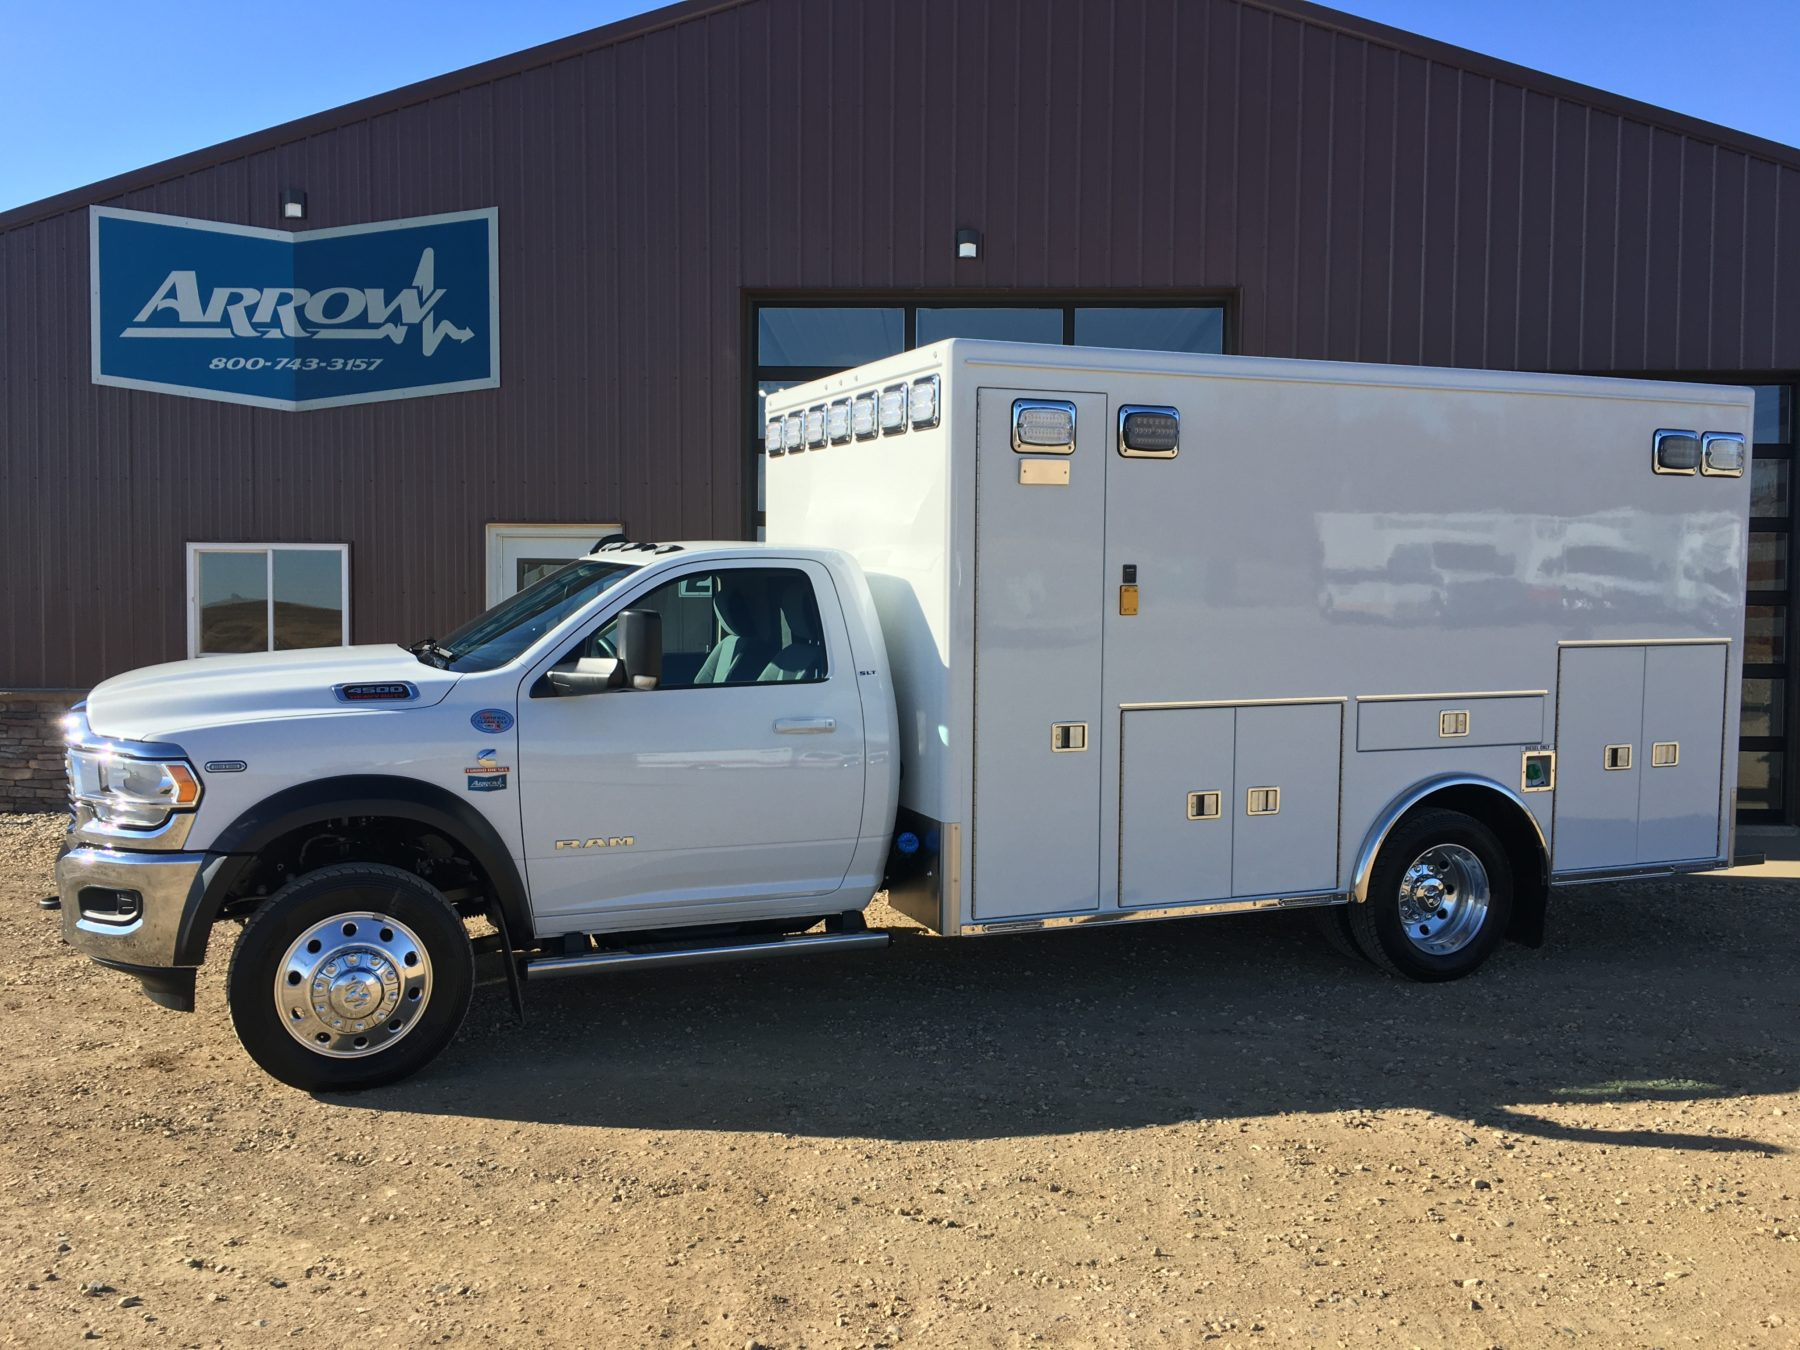 2020 Ram 4500 4x4 Heavy Duty Ambulance For Sale – Picture 4